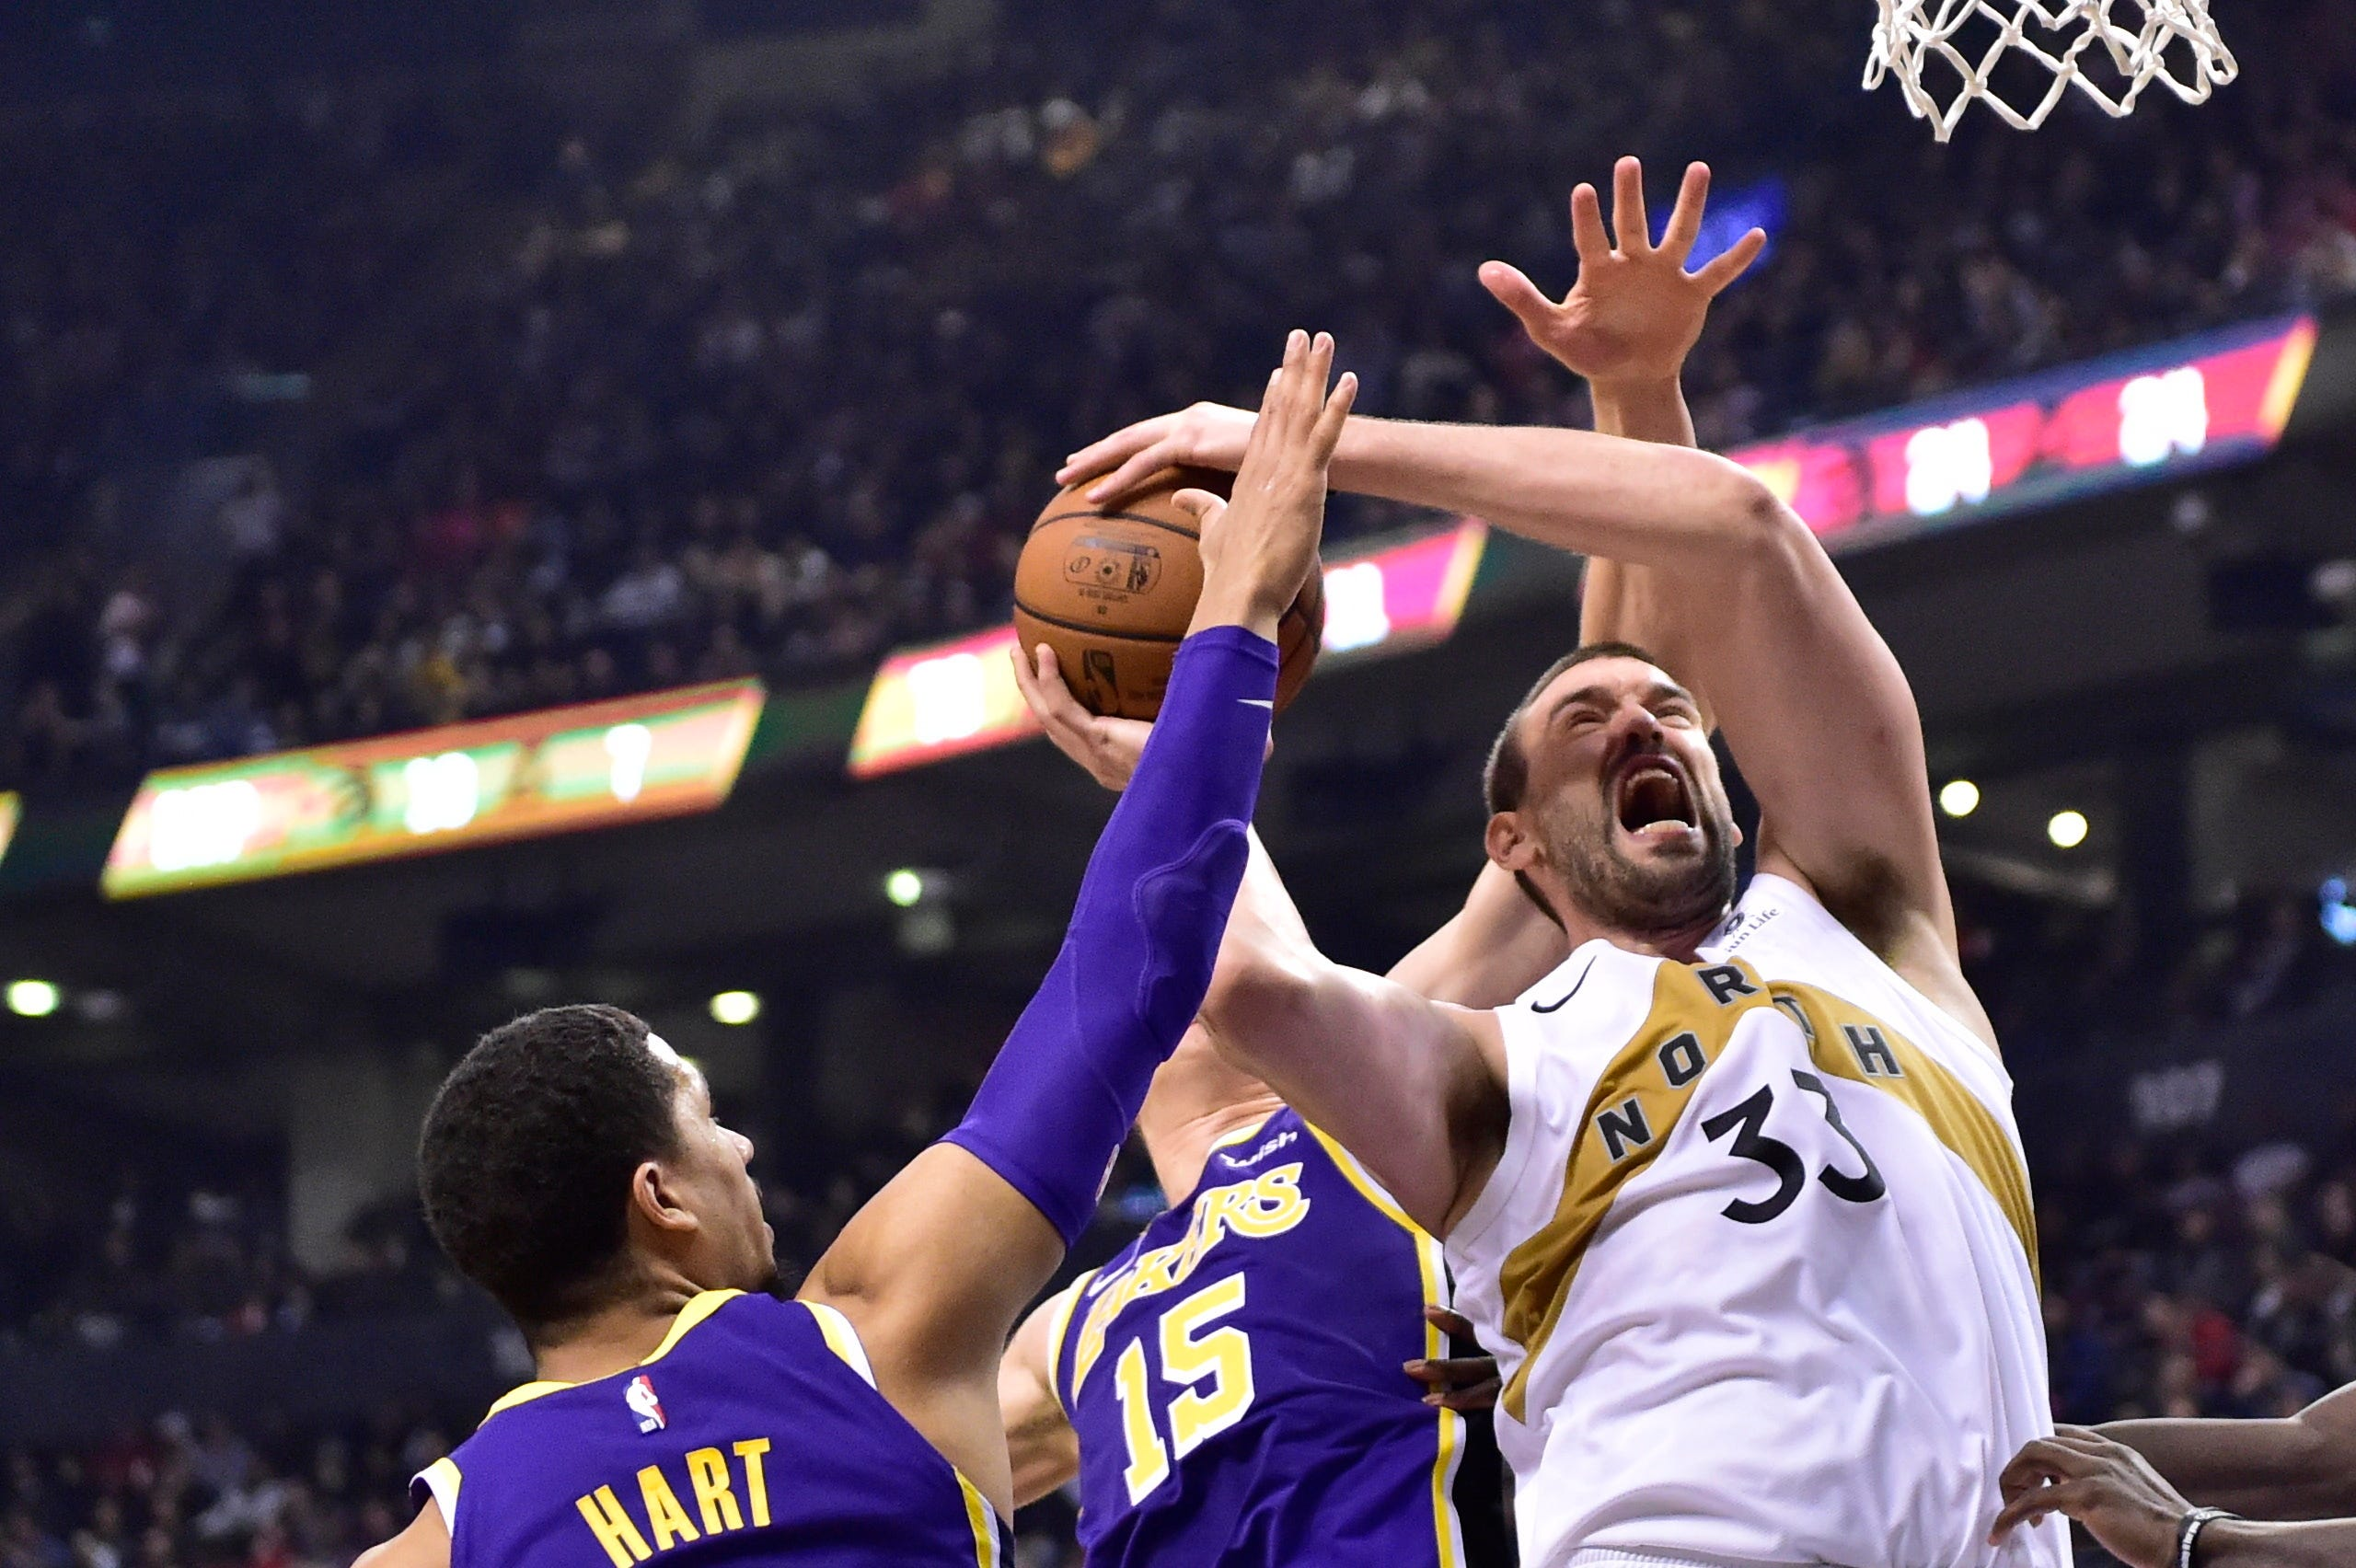 Raptors beat Lakers, LeBron struggling with limited minutes